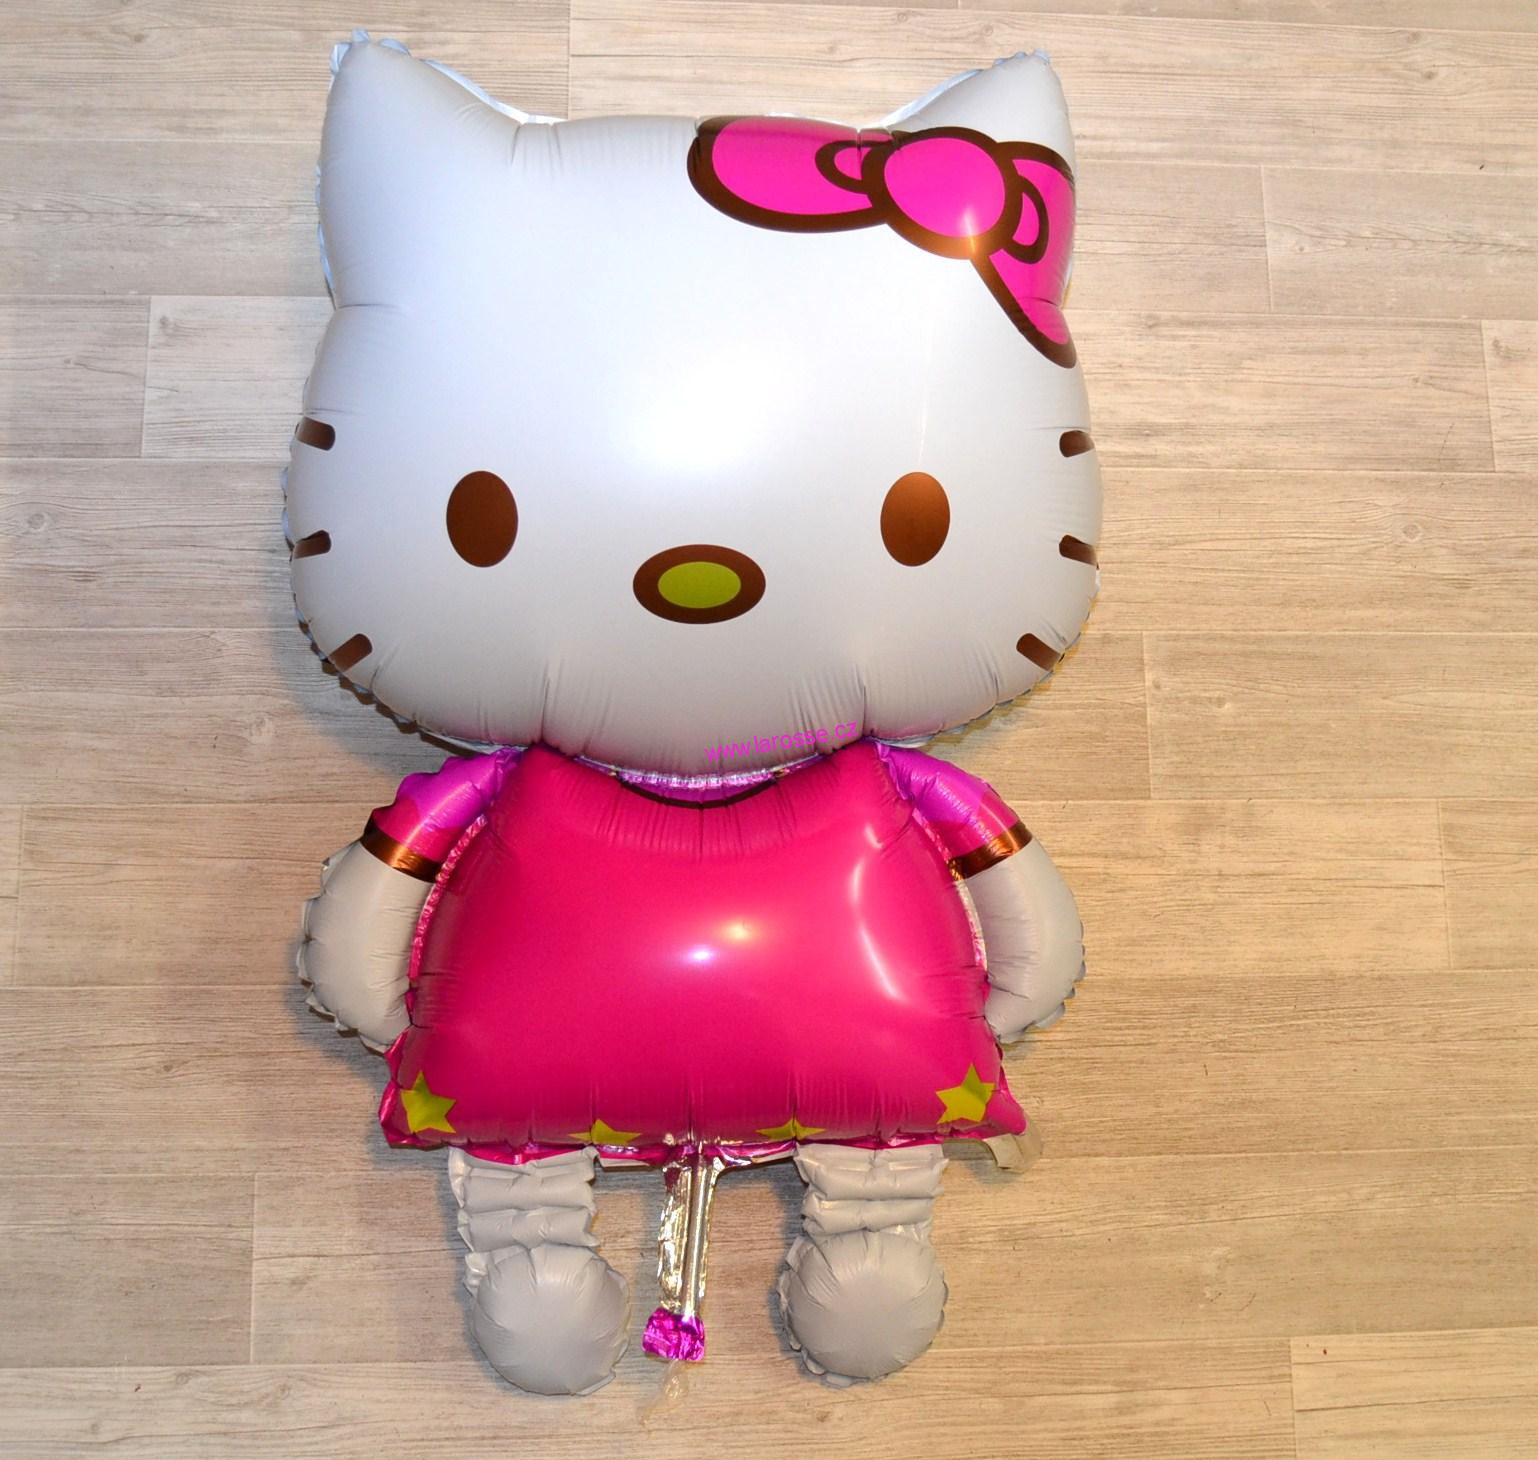 Balónek Hello Kitty 116 x 68 cm